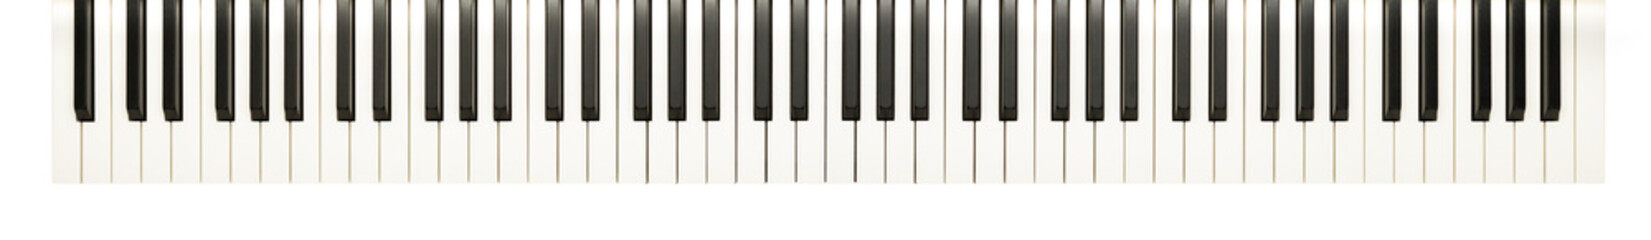 88-key piano keyboard - Tastiera pianoforte a 88 tasti